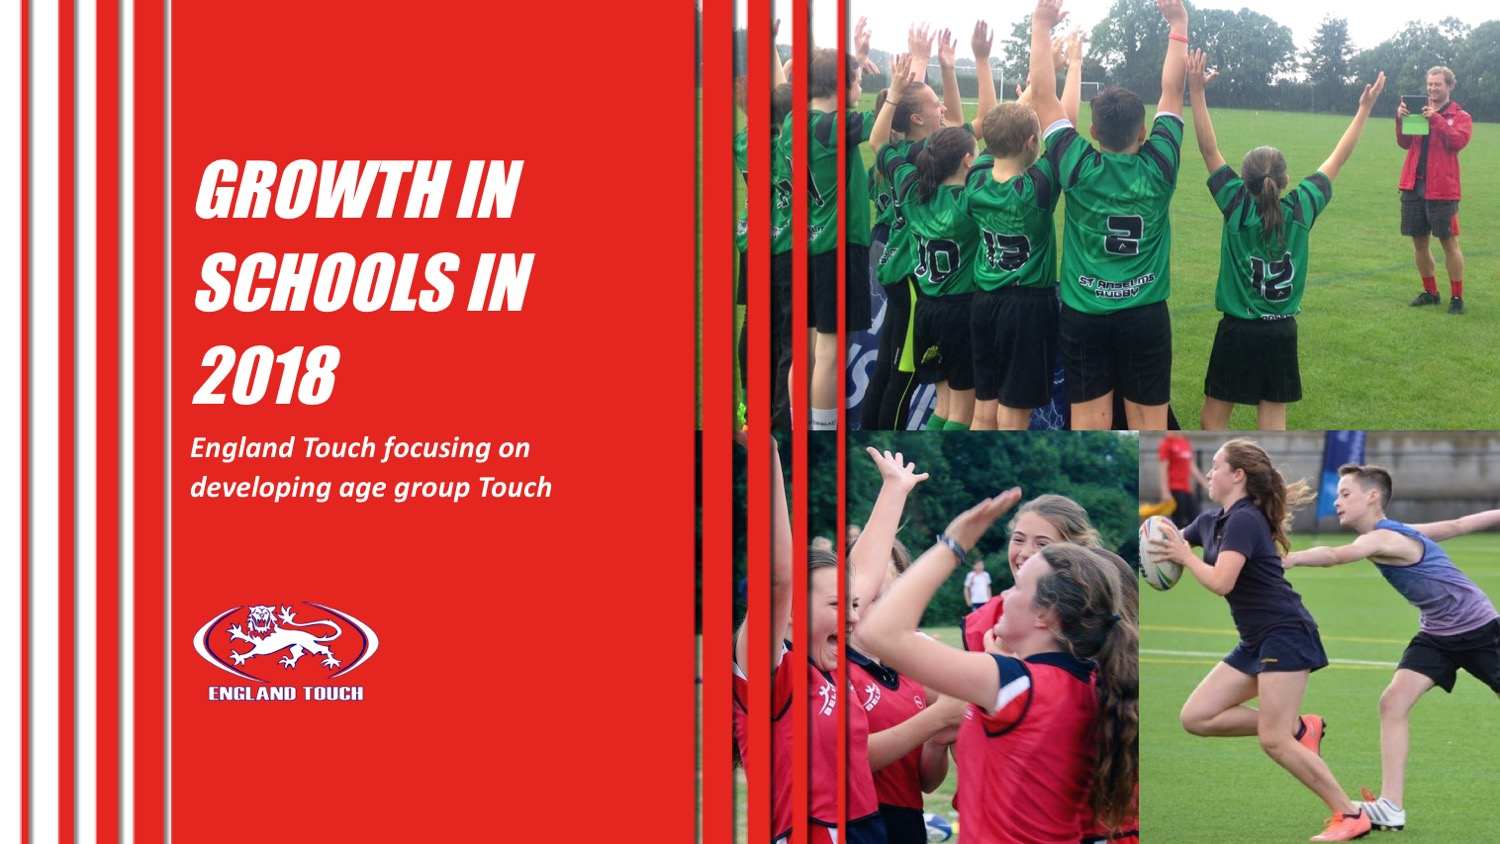 England Touch committed to developing Touch in schools in 2018